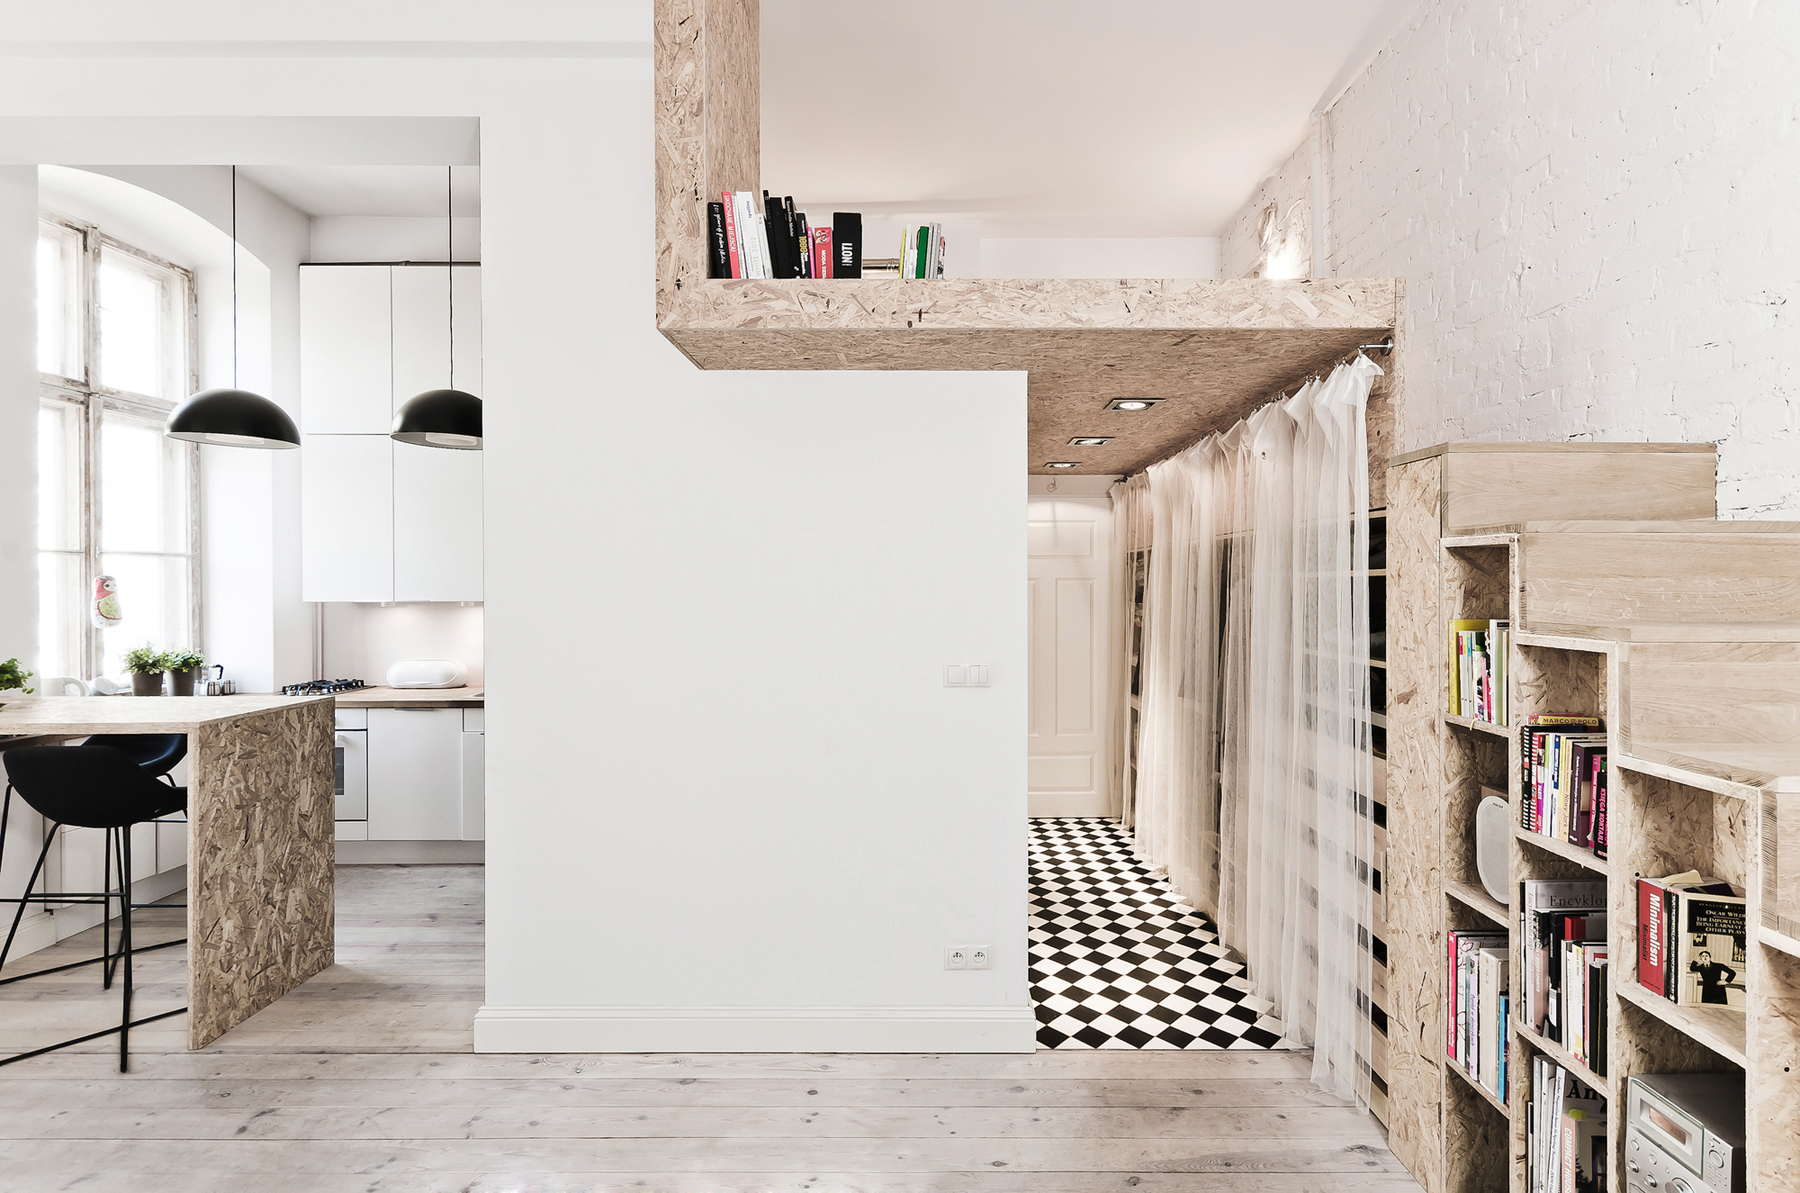 312 Square Foot Studio Loft Apartment In Poland iDesignArch